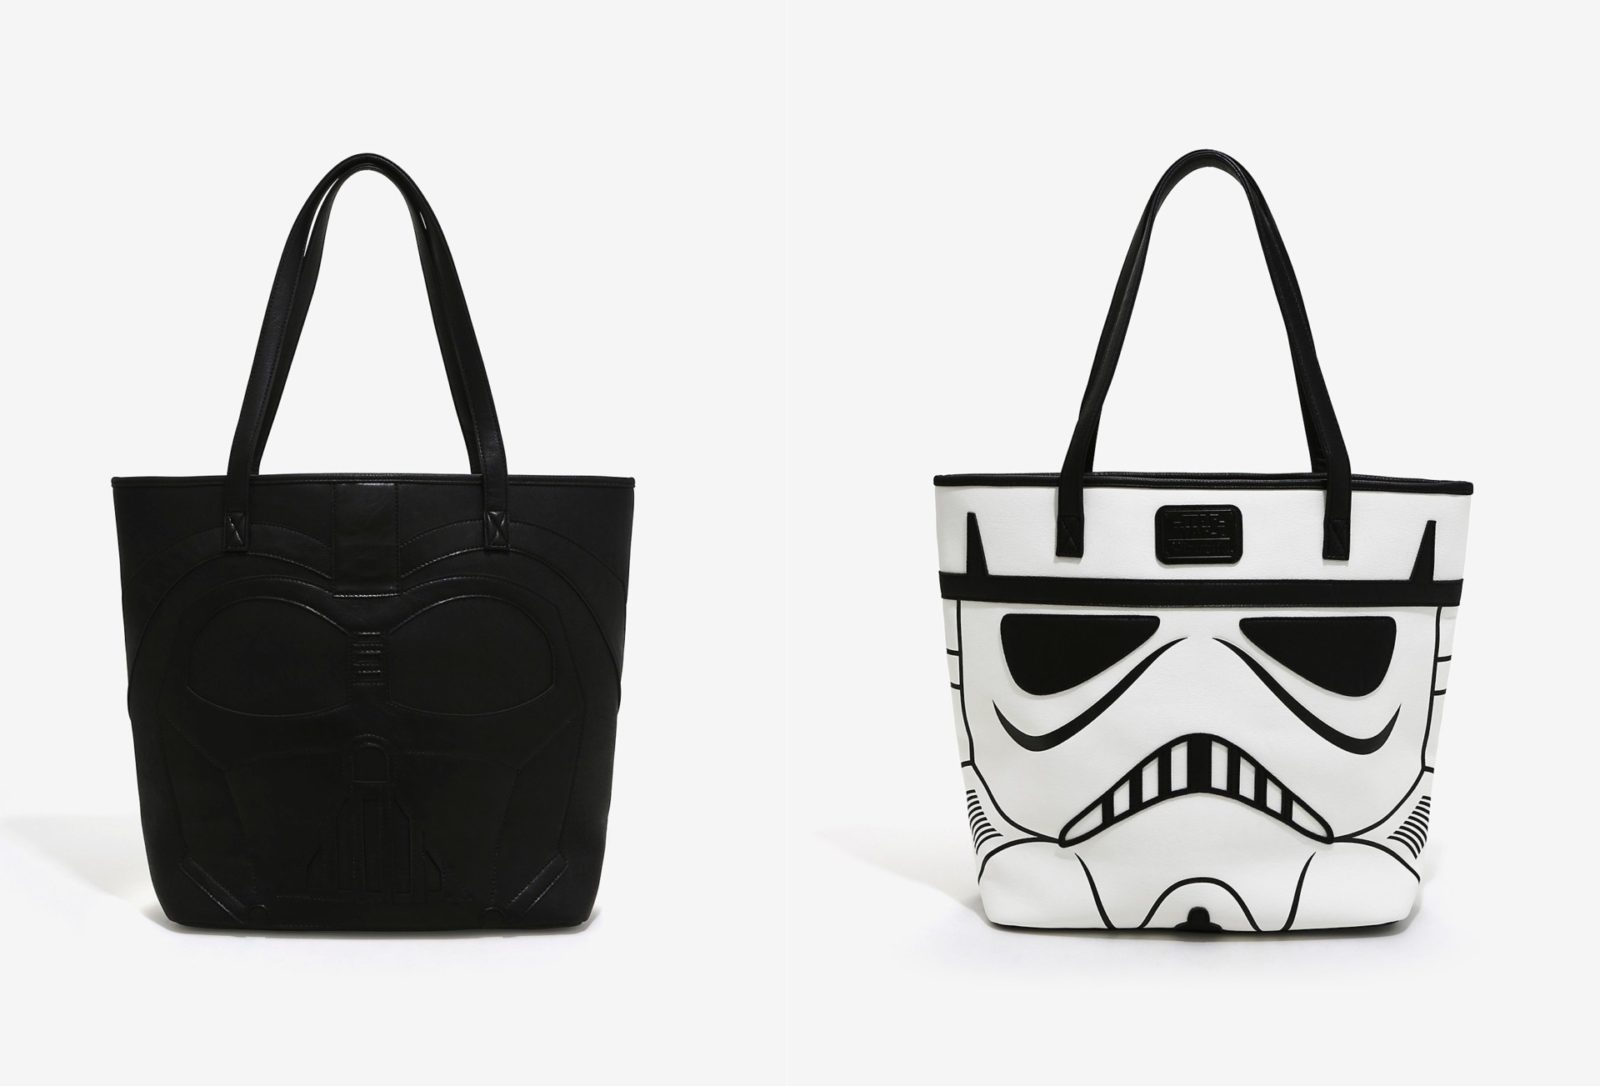 New 2 Sided Loungefly X Star Wars Tote